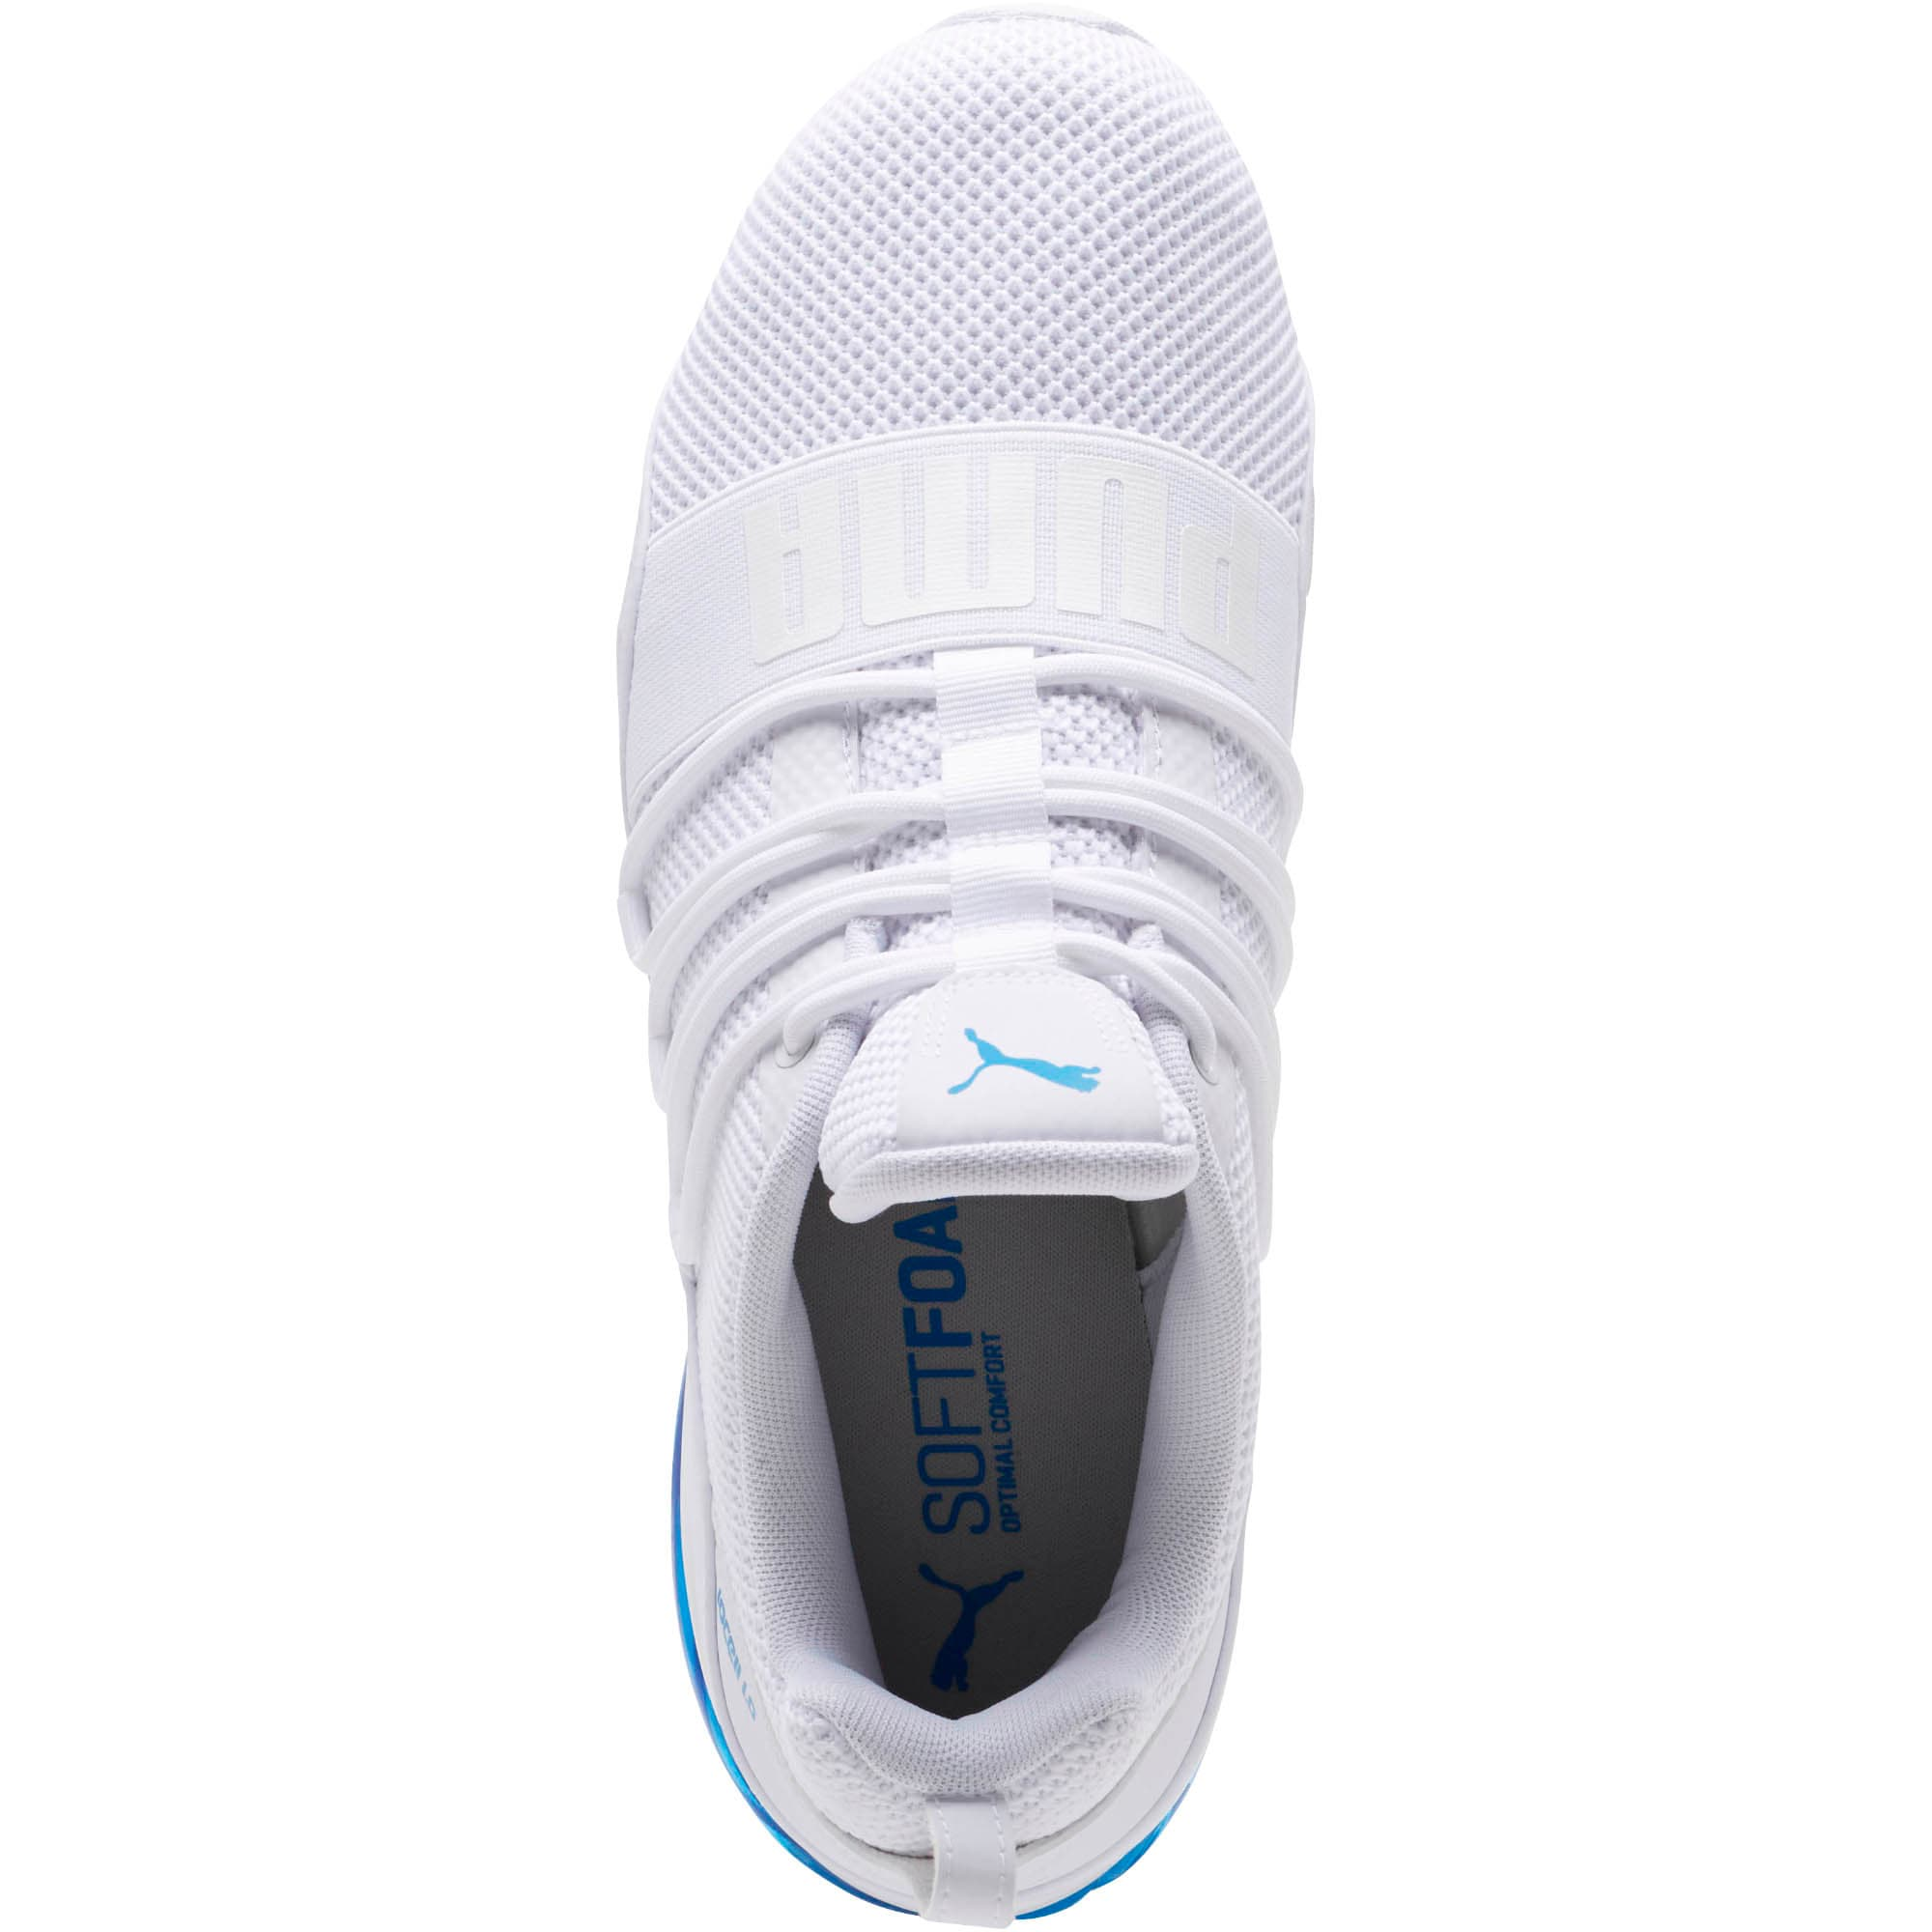 Thumbnail 5 of CELL Regulate Woven Men's Running Shoes, Puma White-Indigo Bunting, medium